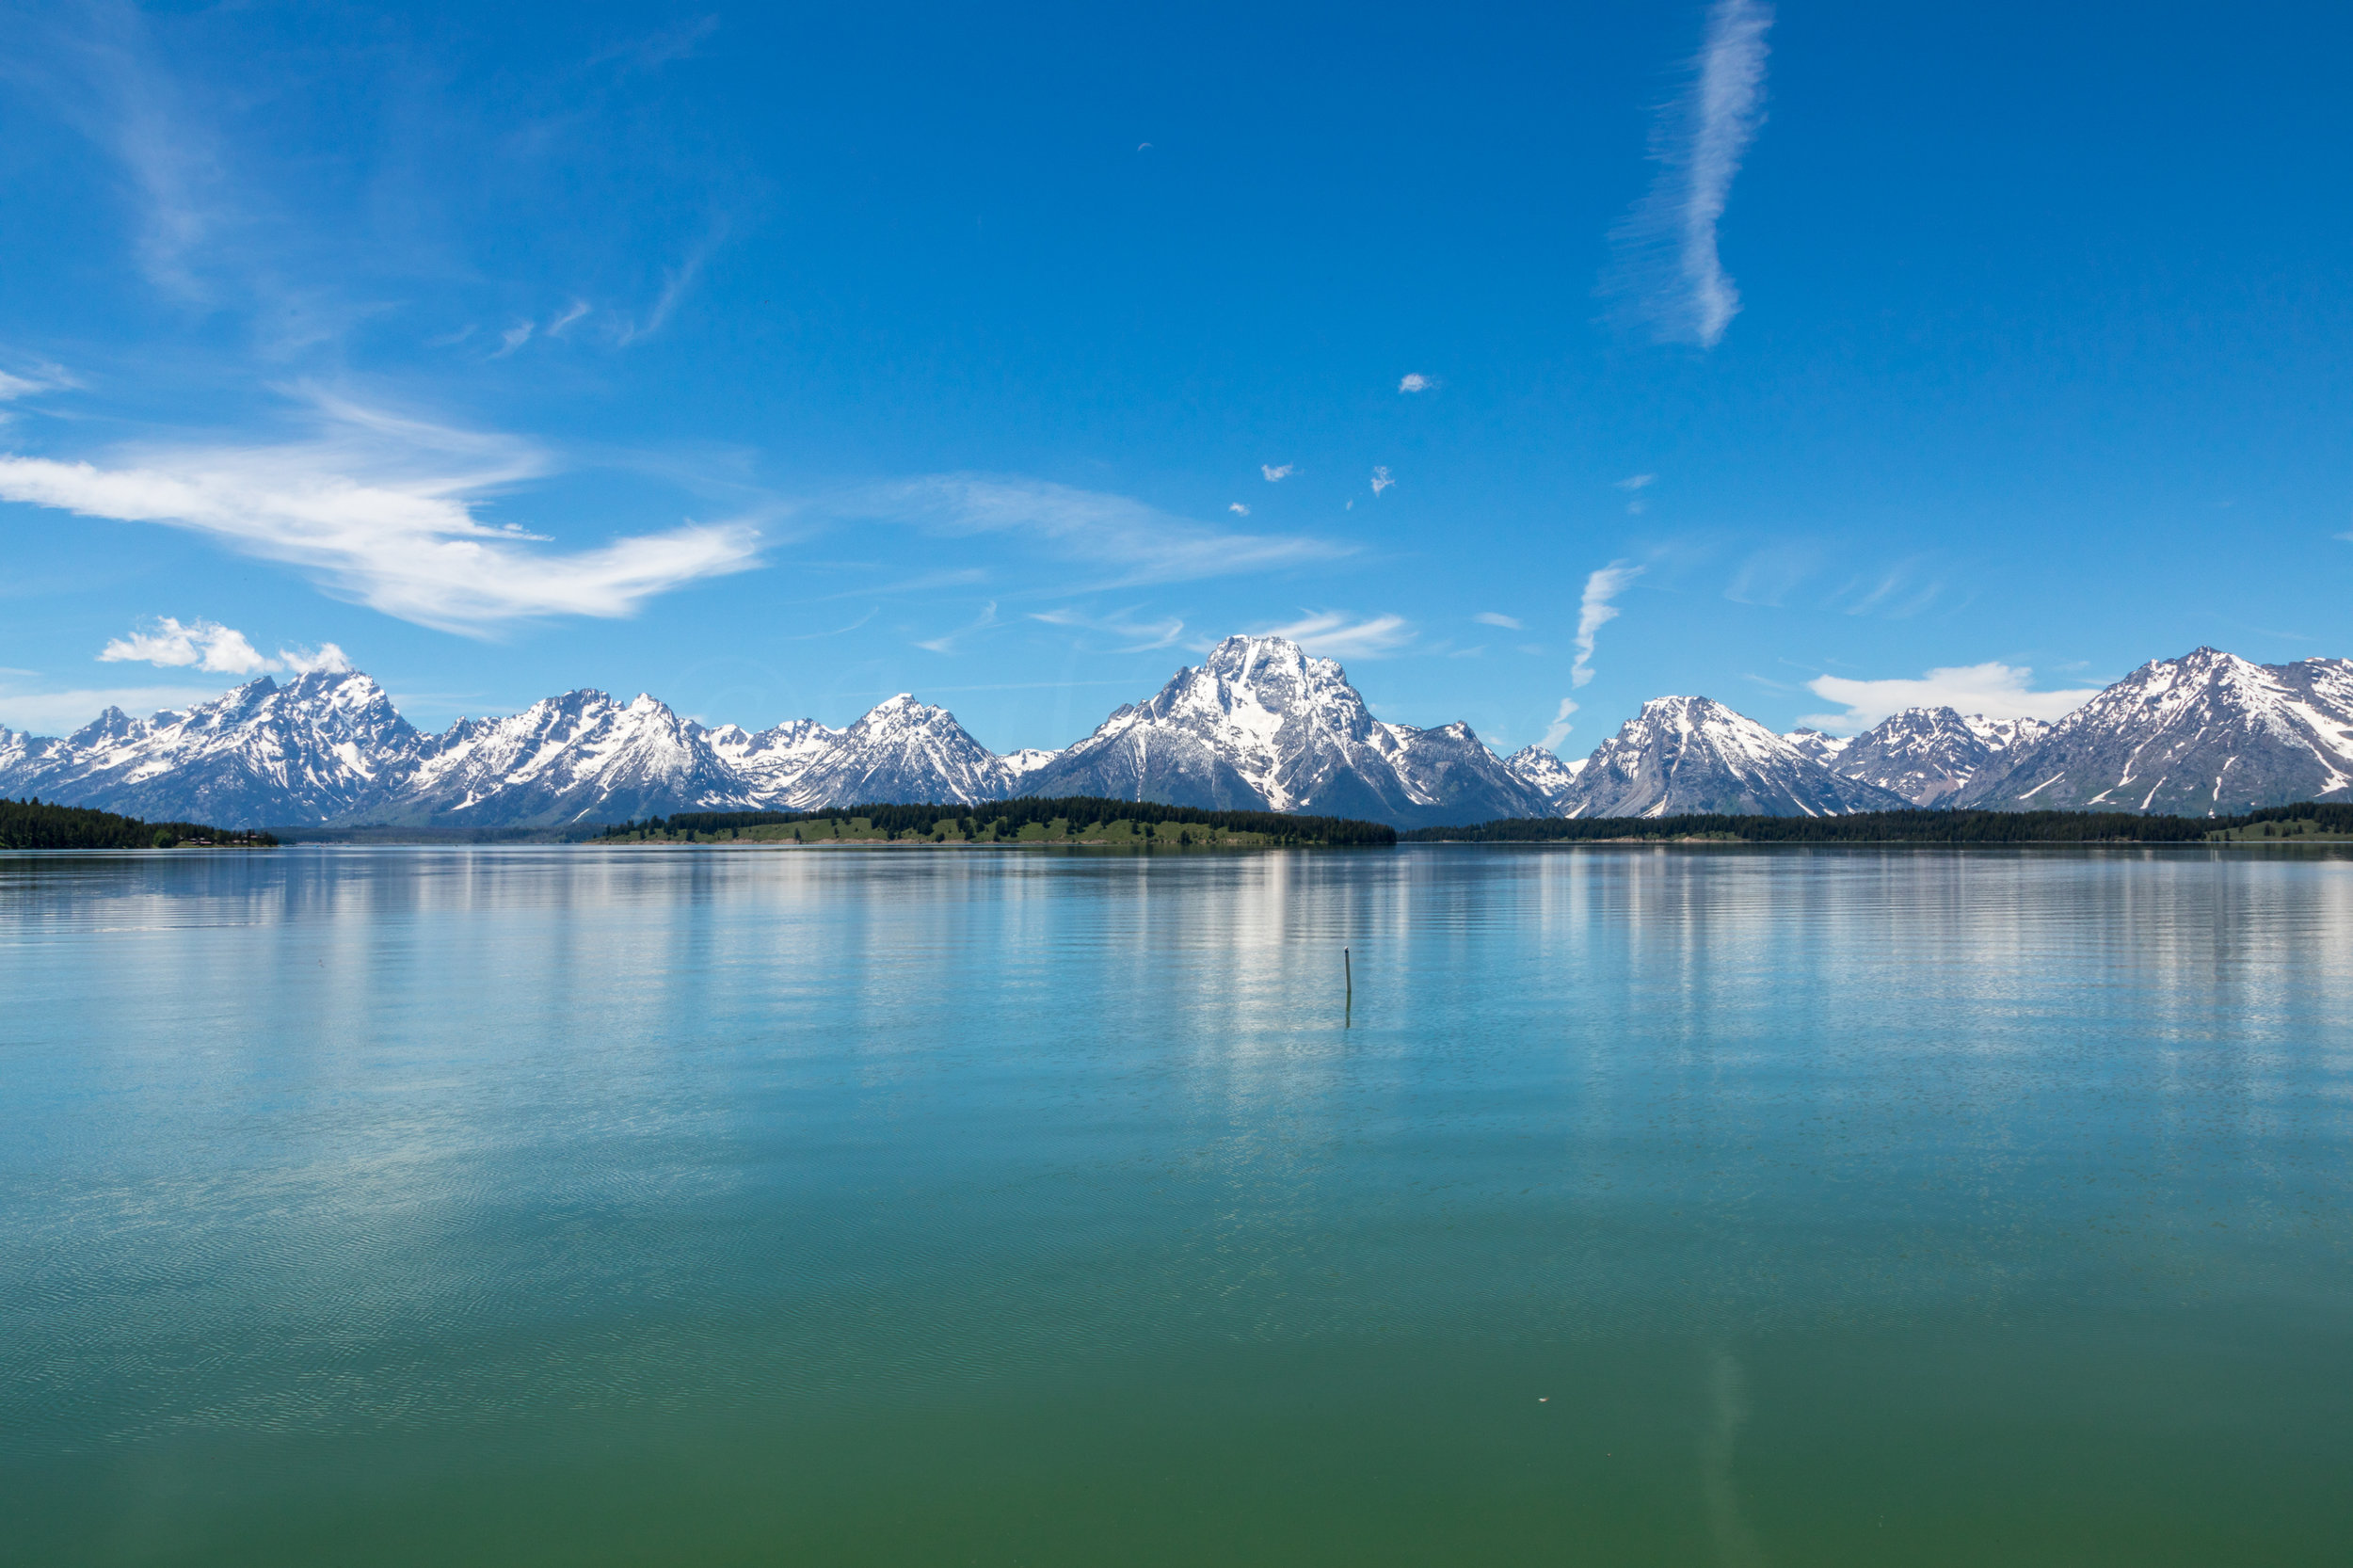 Teton Range Reflection, Image # 2592